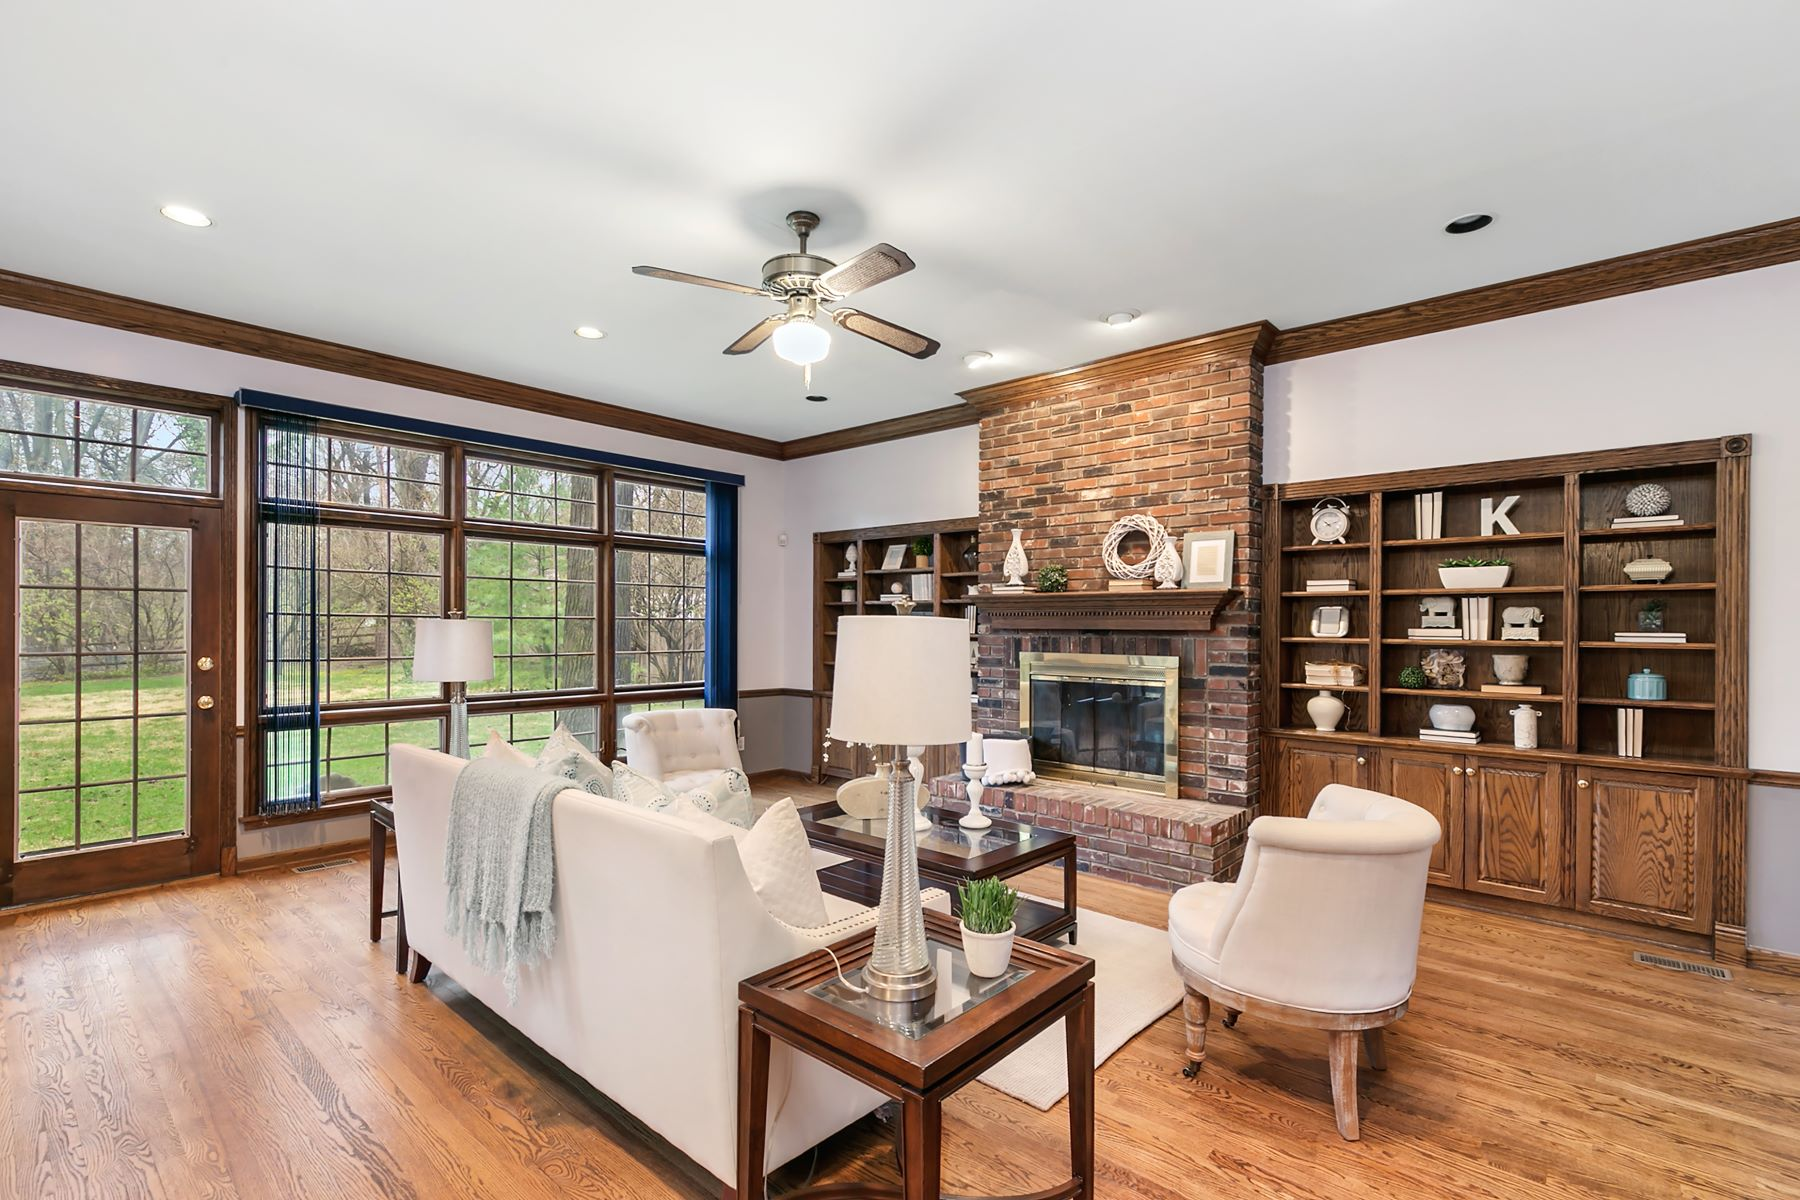 Additional photo for property listing at Classic Ladue Home off Litzsinger 32 Oak Bend Court Ladue, Missouri 63124 United States